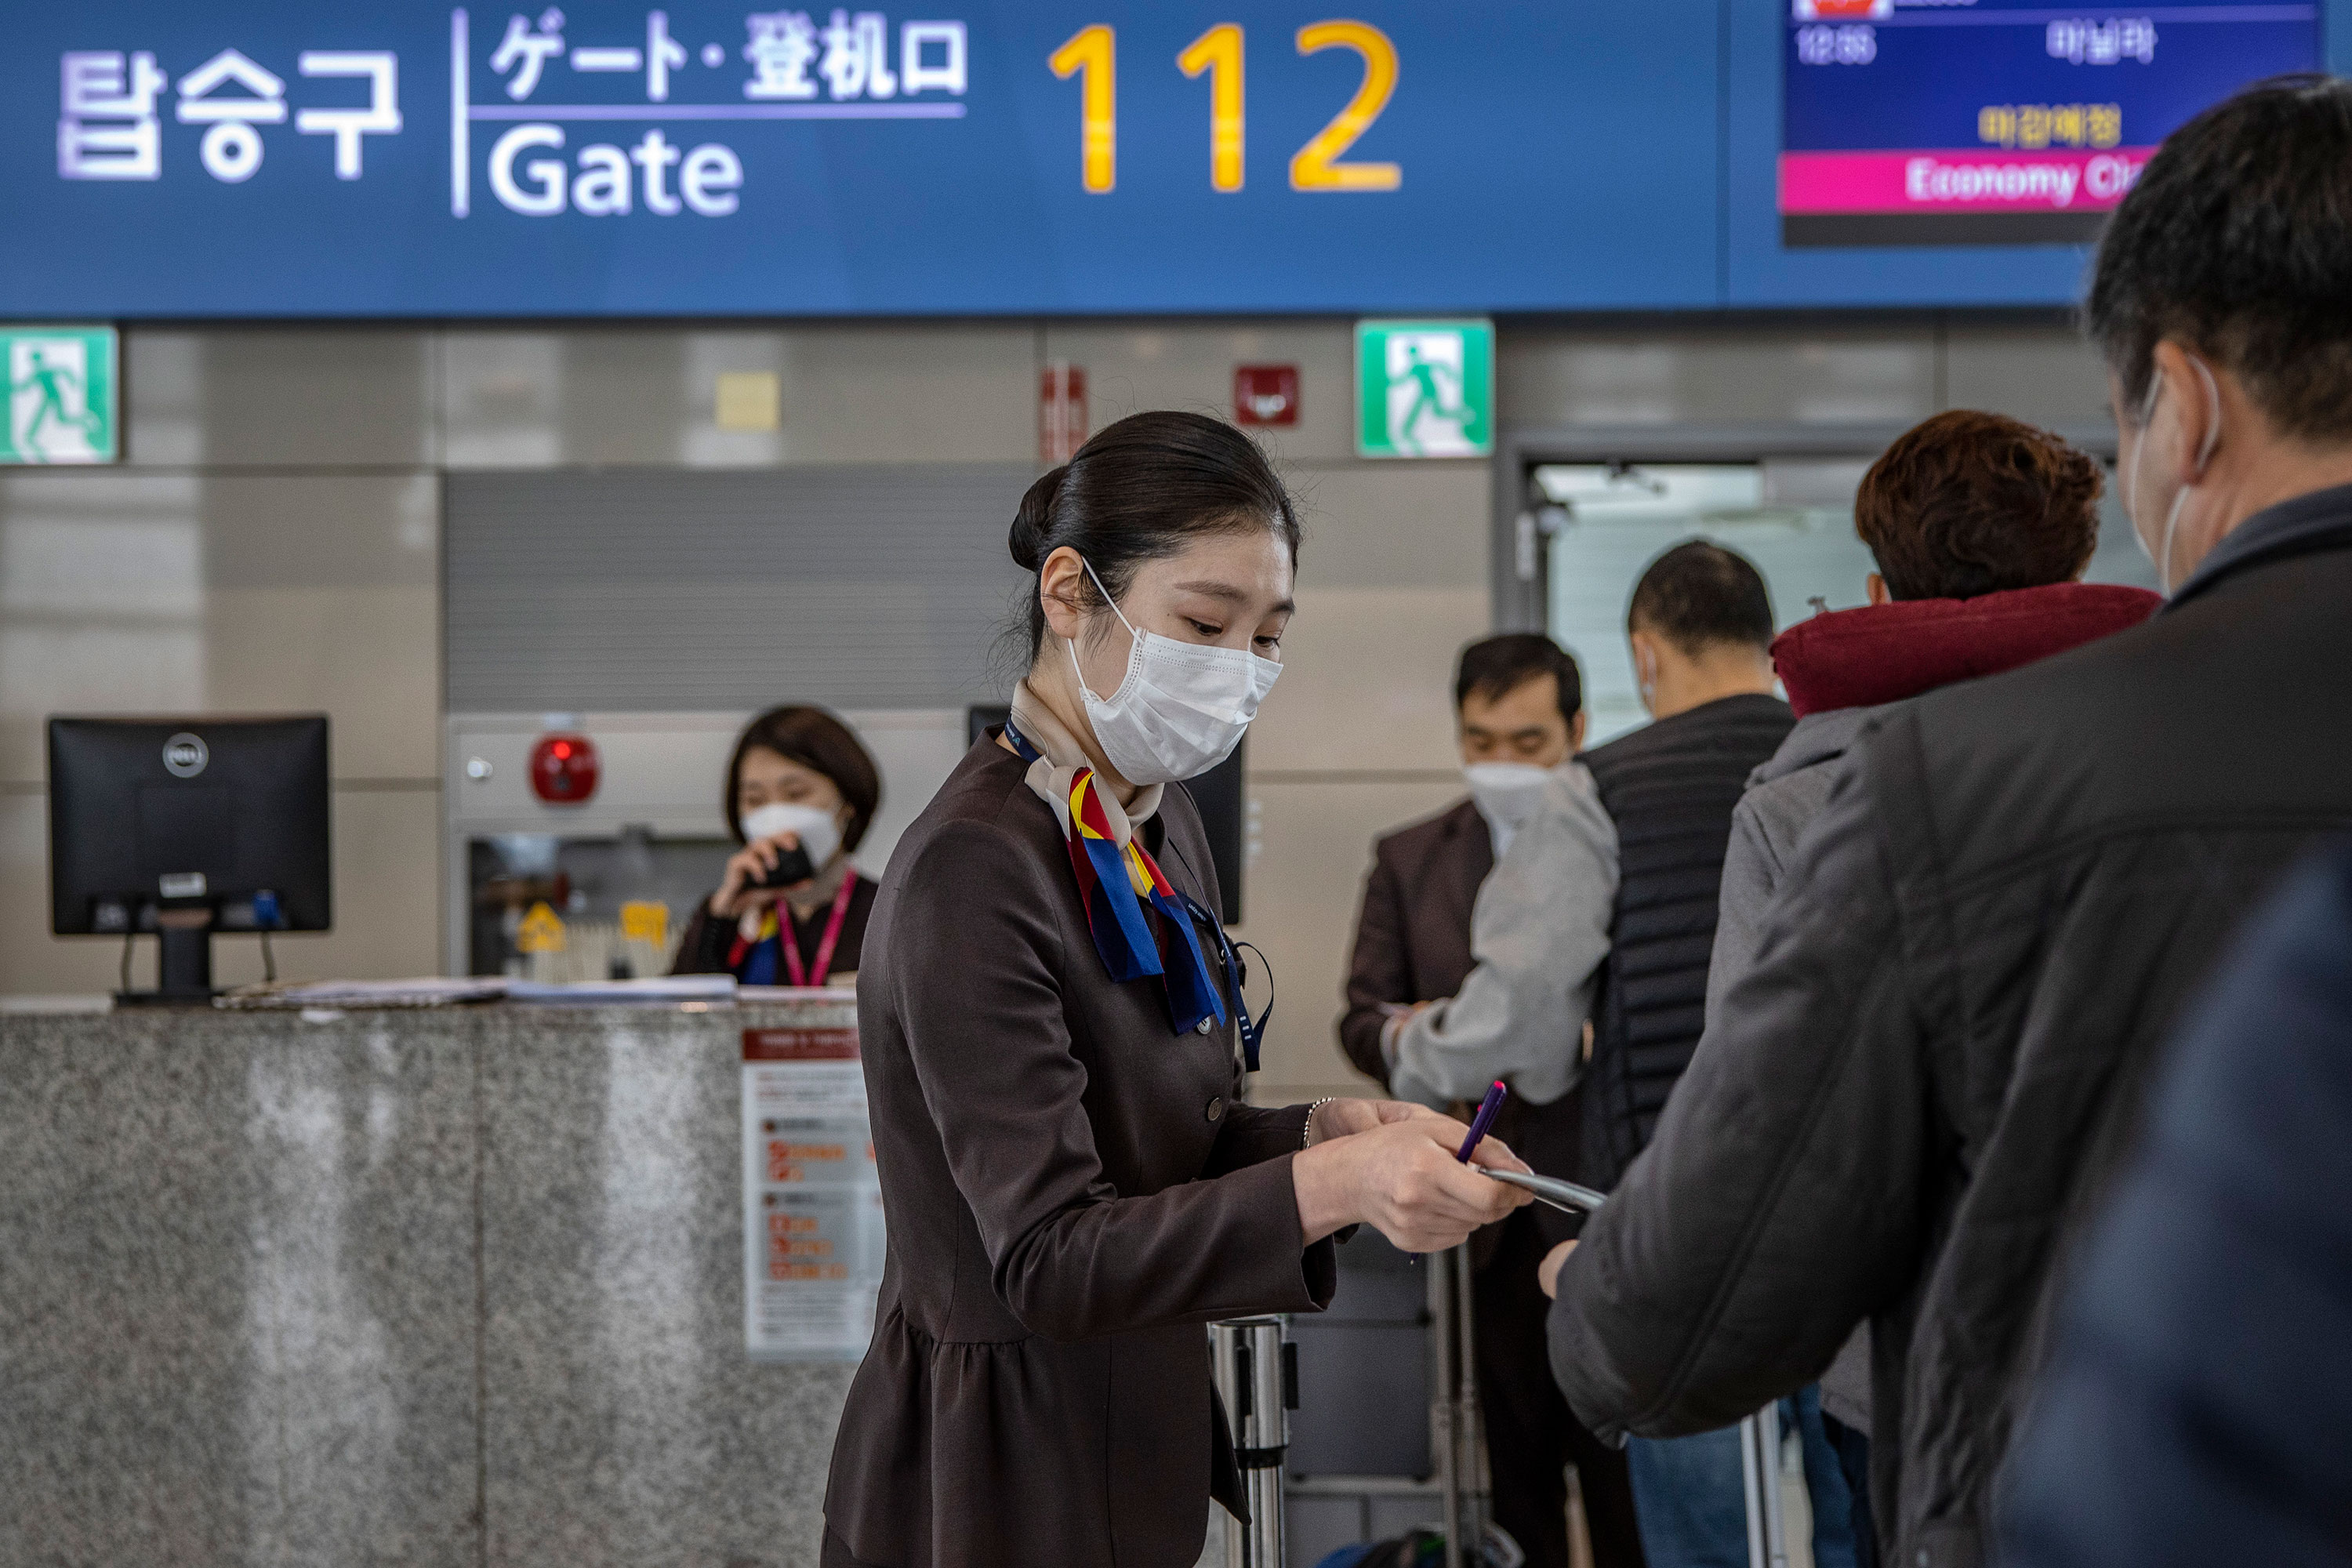 An employee assists passengers at the Incheon International Airport on March 10 in Incheon, South Korea.